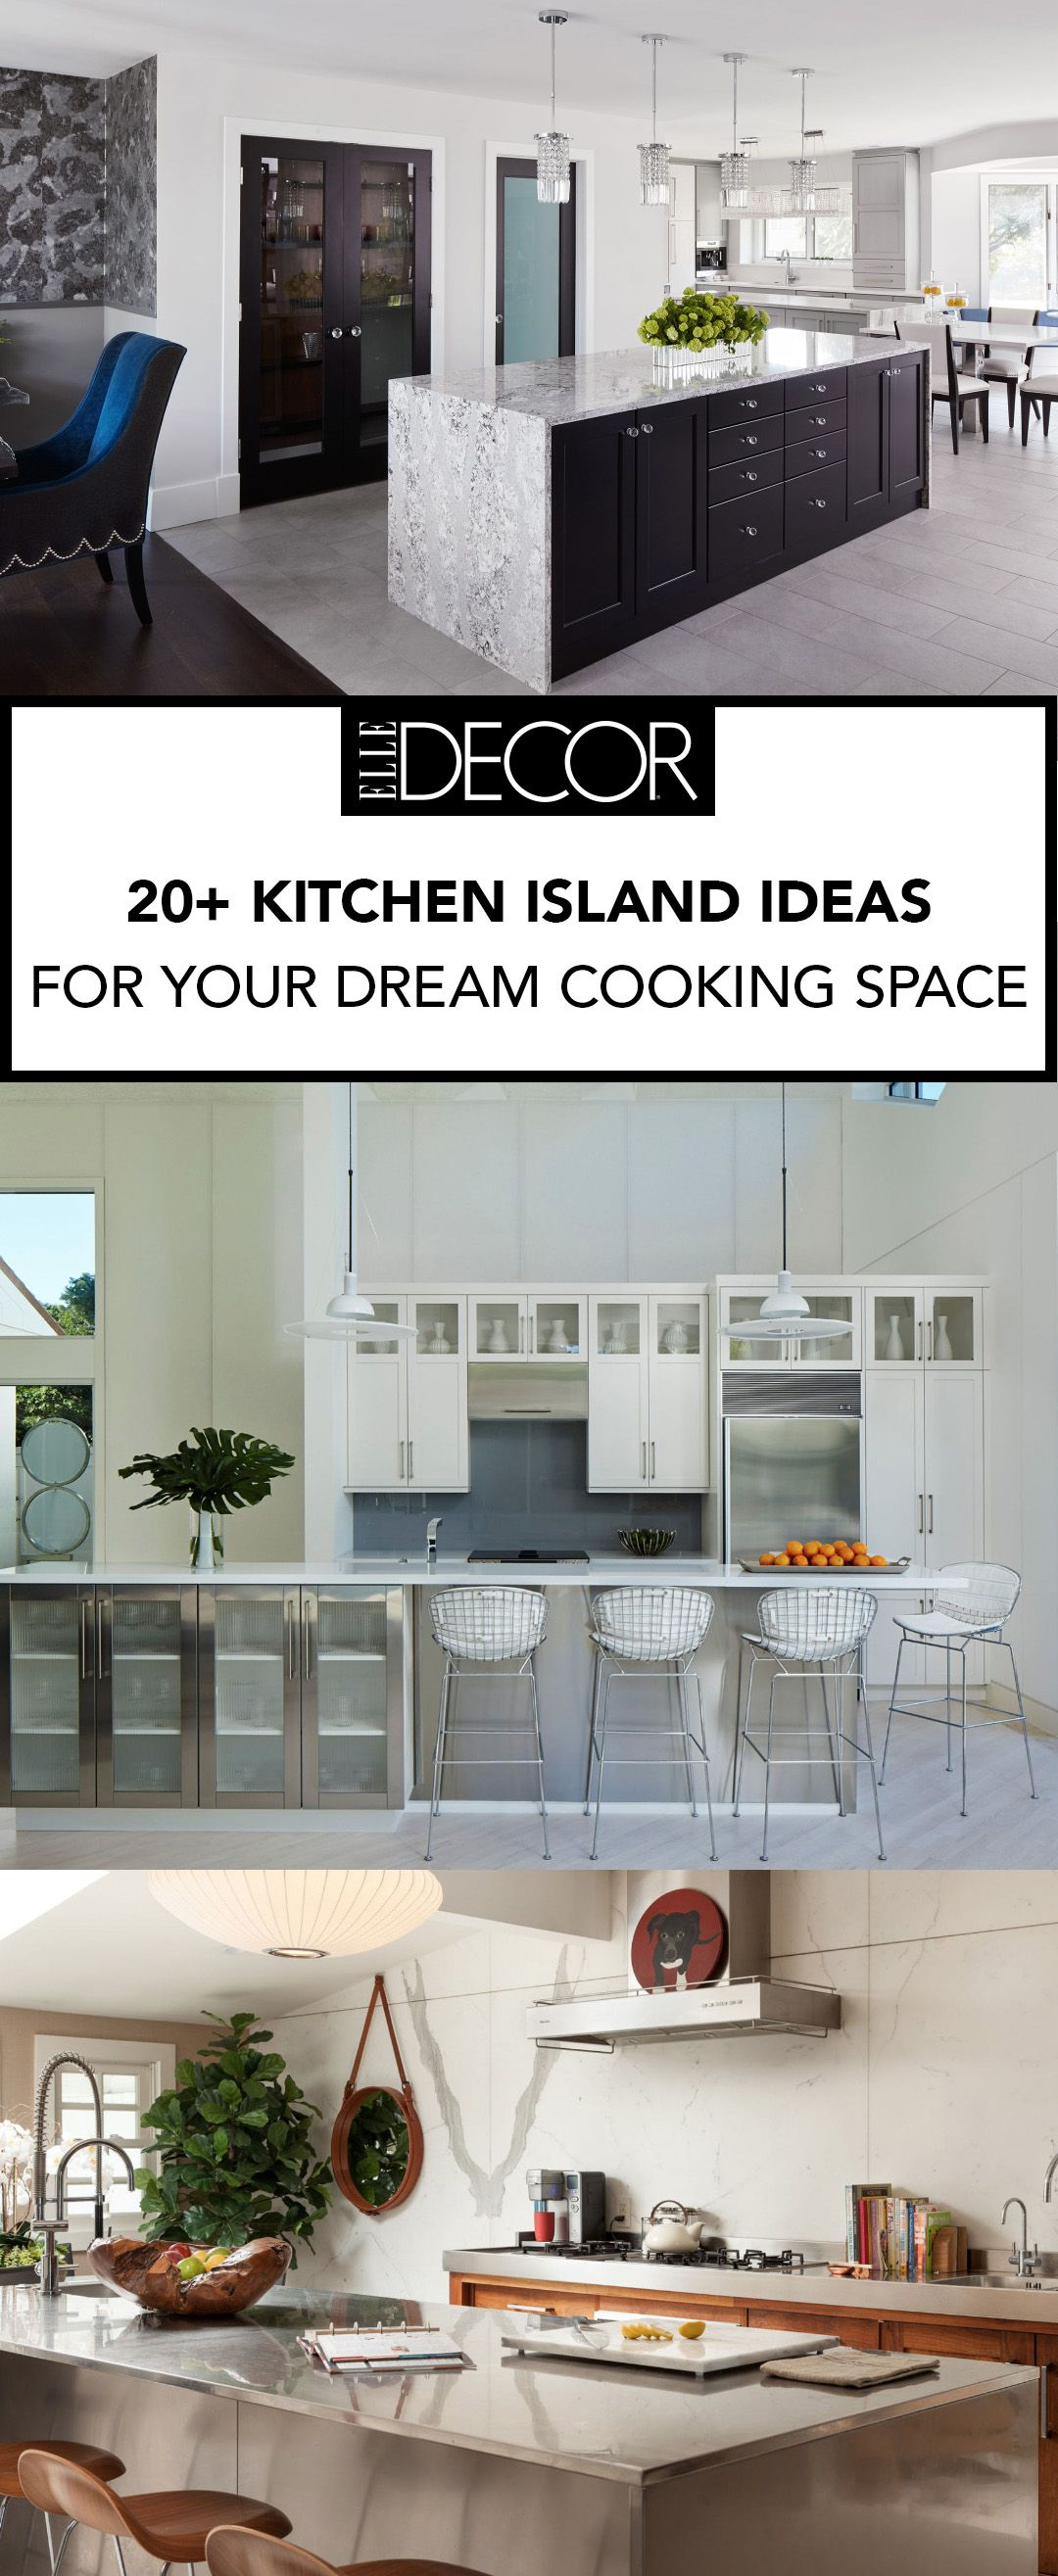 20+ Best Kitchen Islands - Kitchen Design And Kitchen Island Ideas